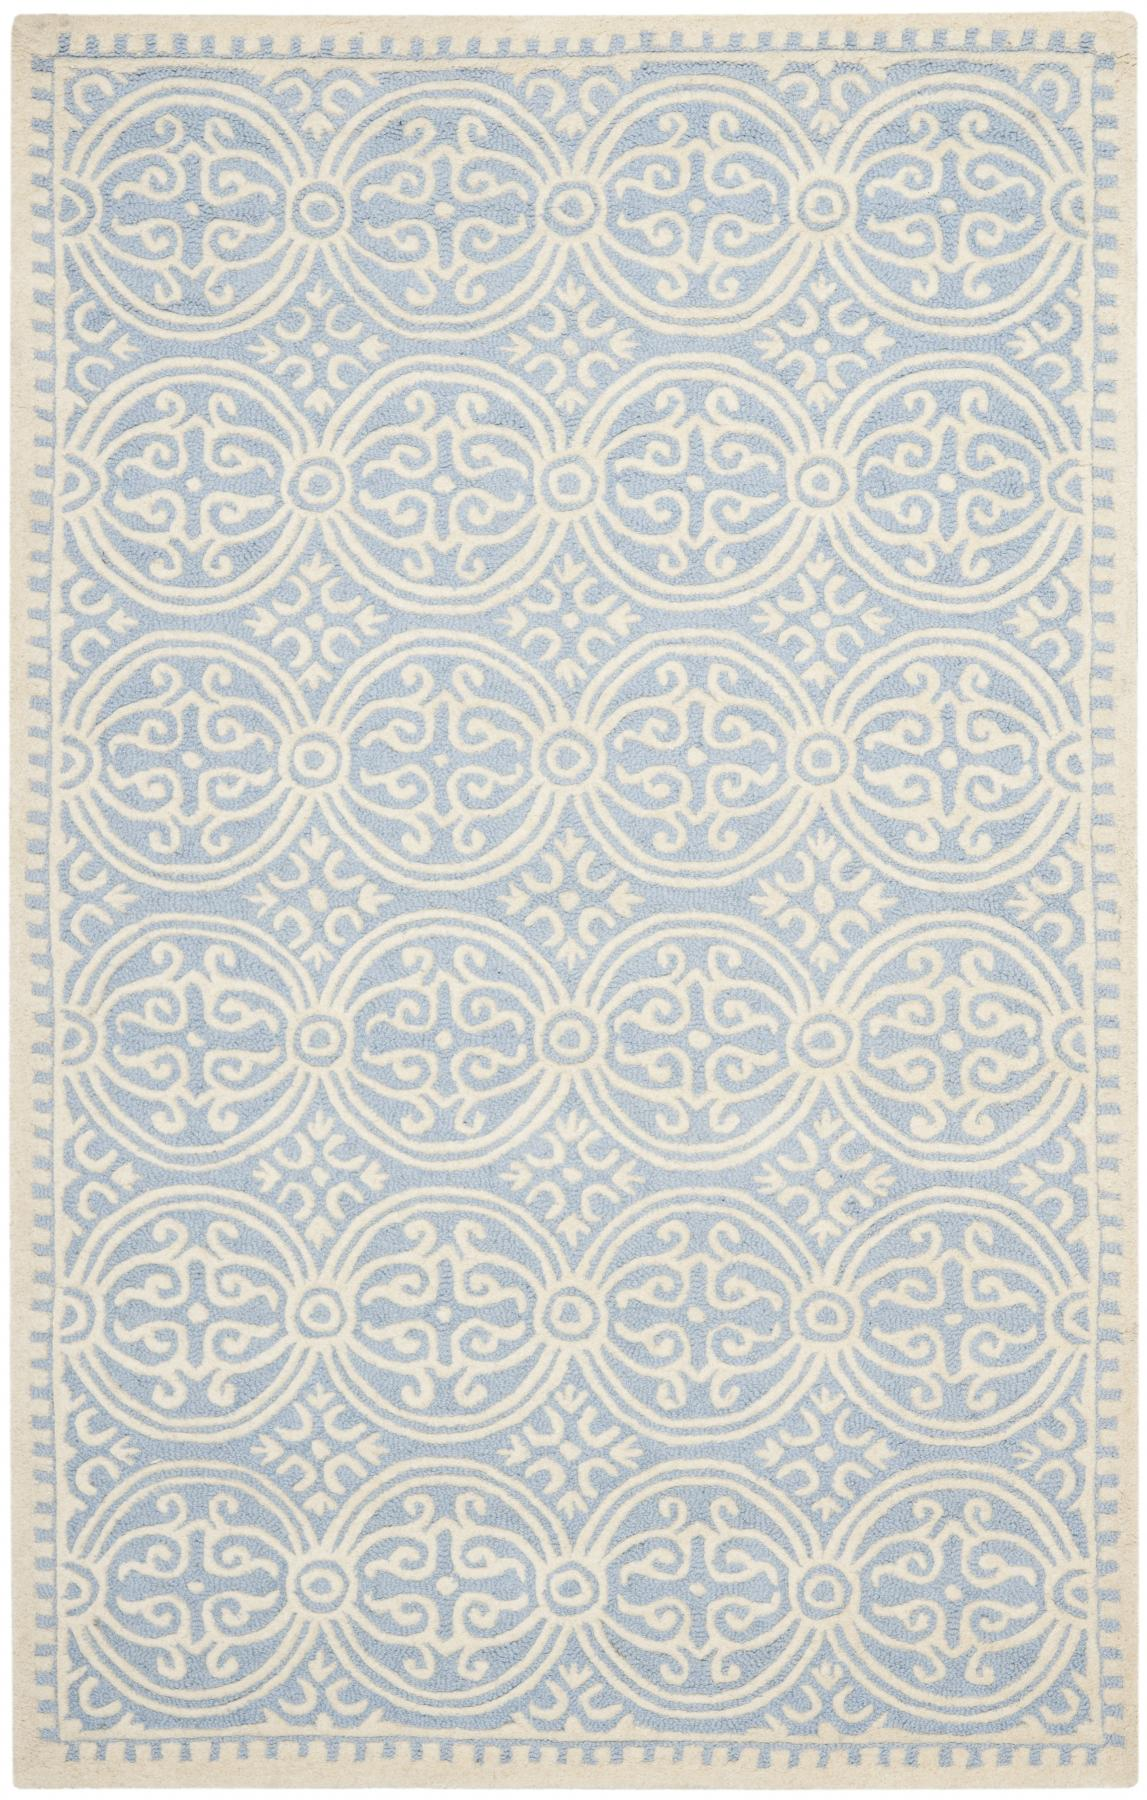 Beautiful ivory/pale blue all over pattern rug